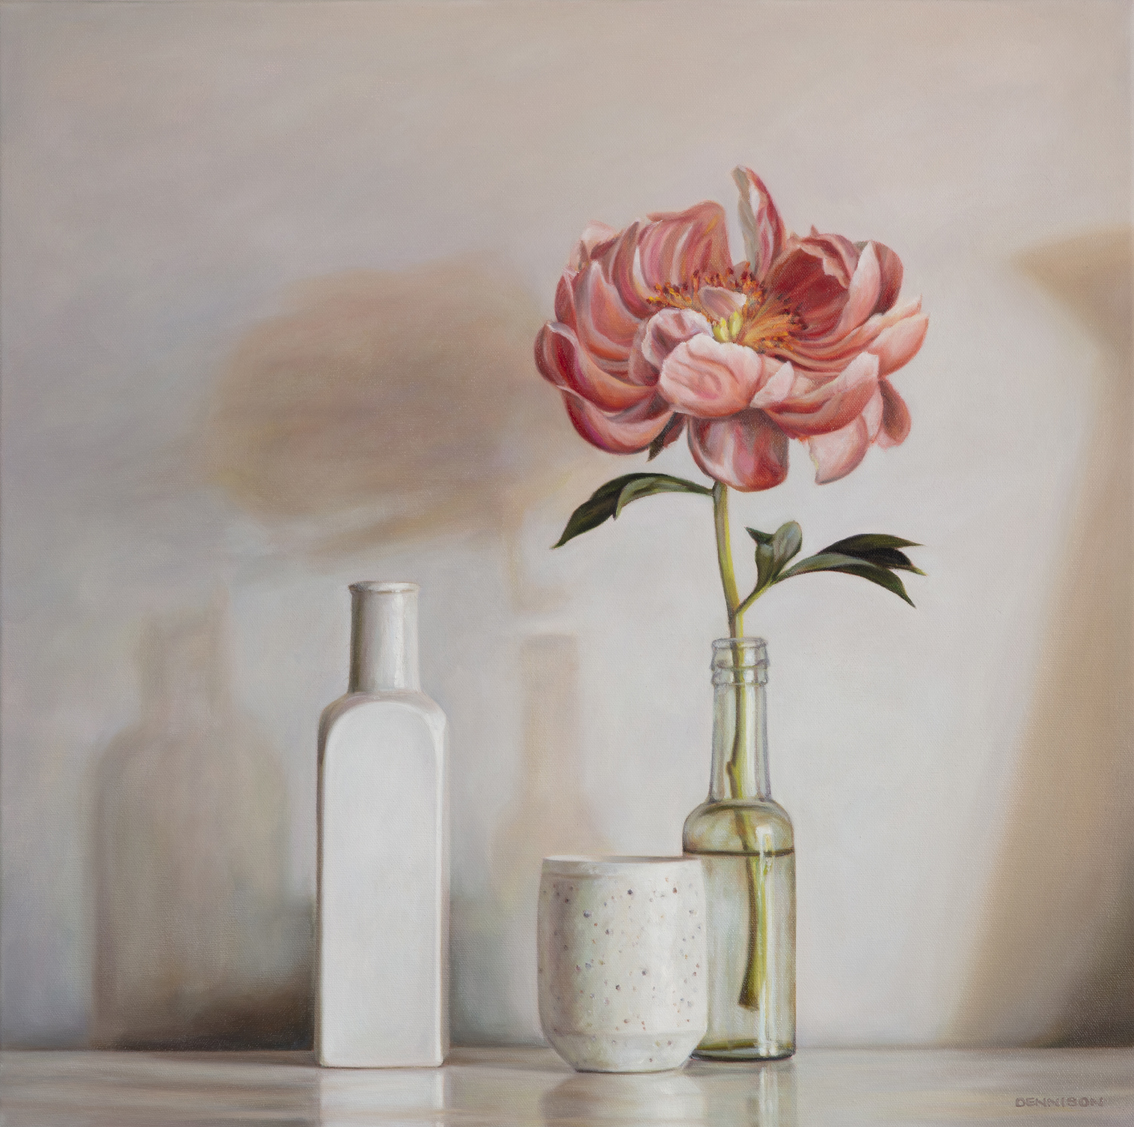 Still Life with Peony   Oil on Canvas, 60 x 60cm, $1900